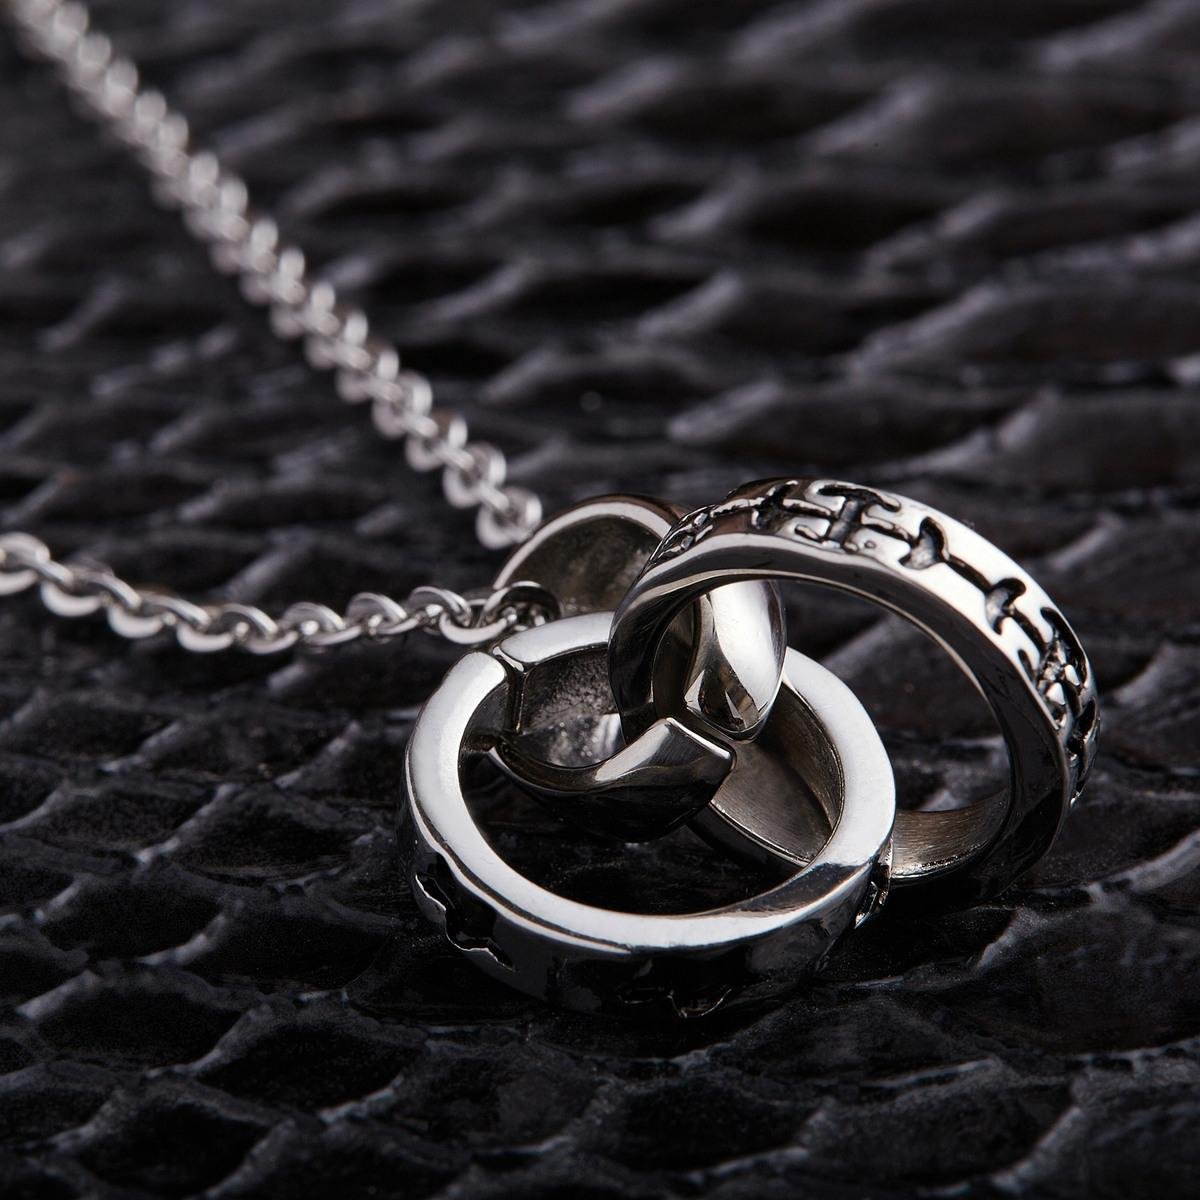 Stainless steel ornaments - Titanium Steel Pendeloque Cut New Pattern Three Ring Stainless Steel Ornaments Lovers Titanium Steel Ring Circle